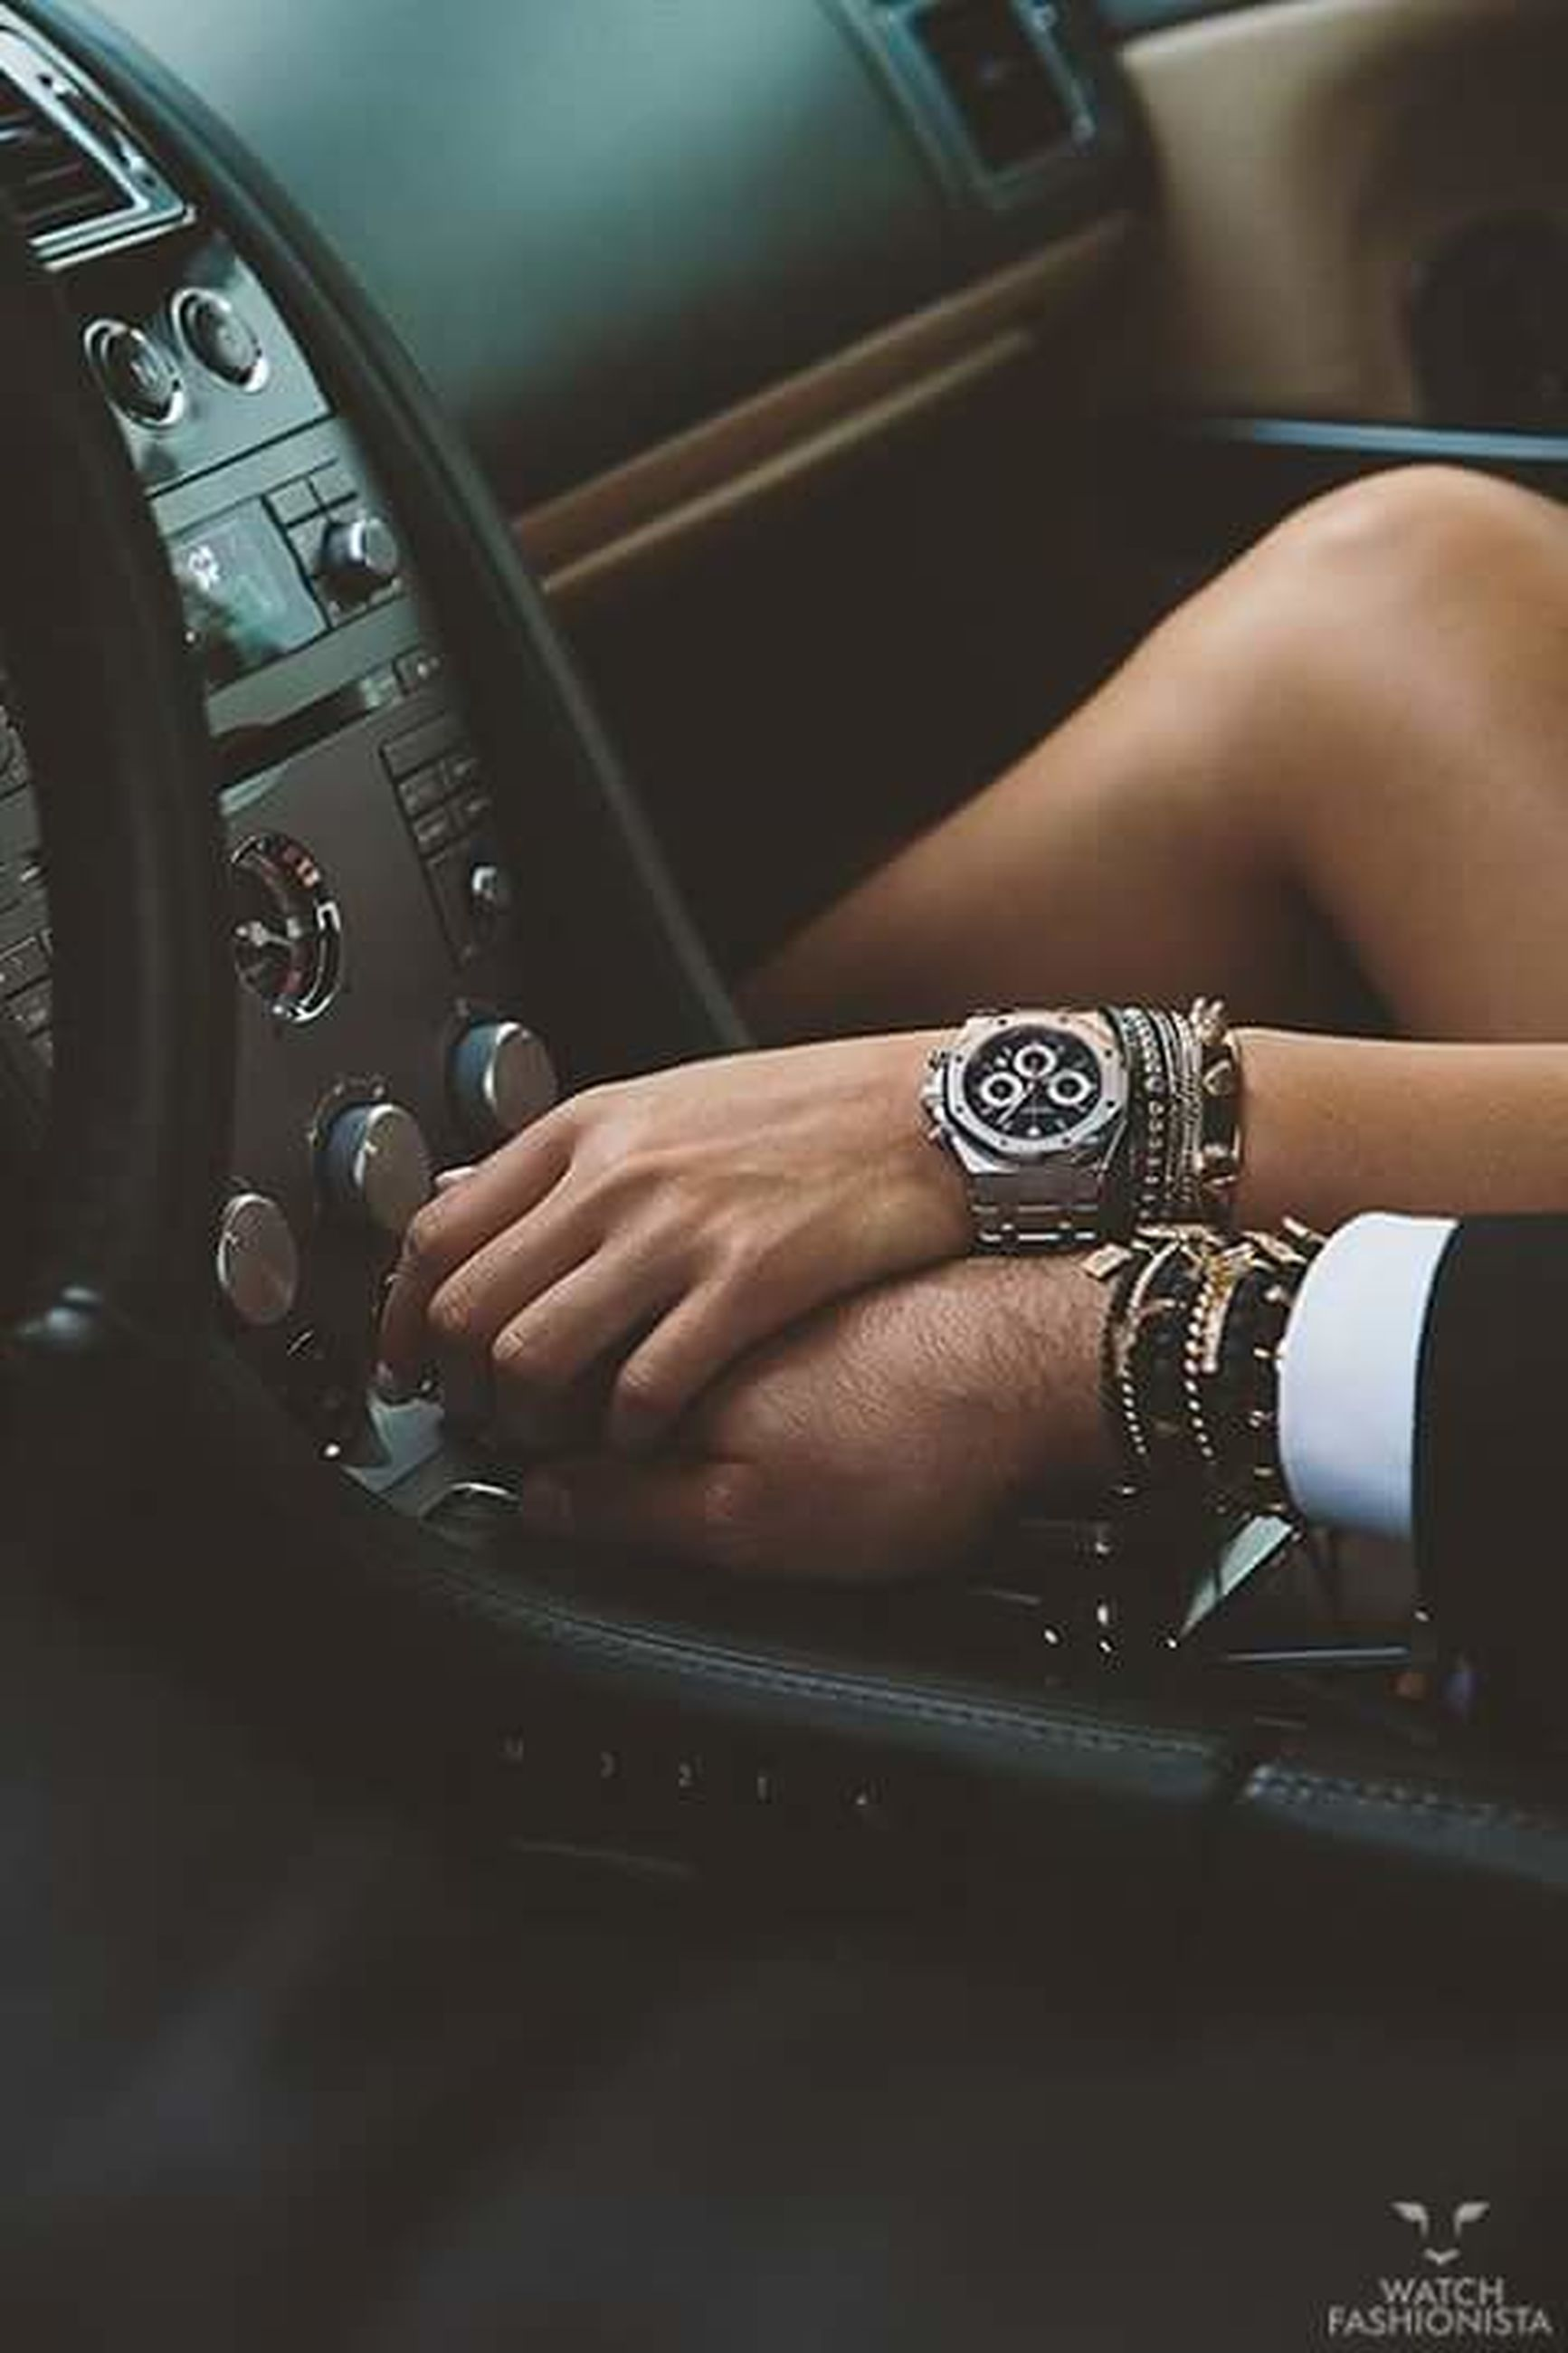 indoors, person, part of, lifestyles, cropped, leisure activity, holding, men, human finger, technology, close-up, sitting, vehicle interior, midsection, wireless technology, wristwatch